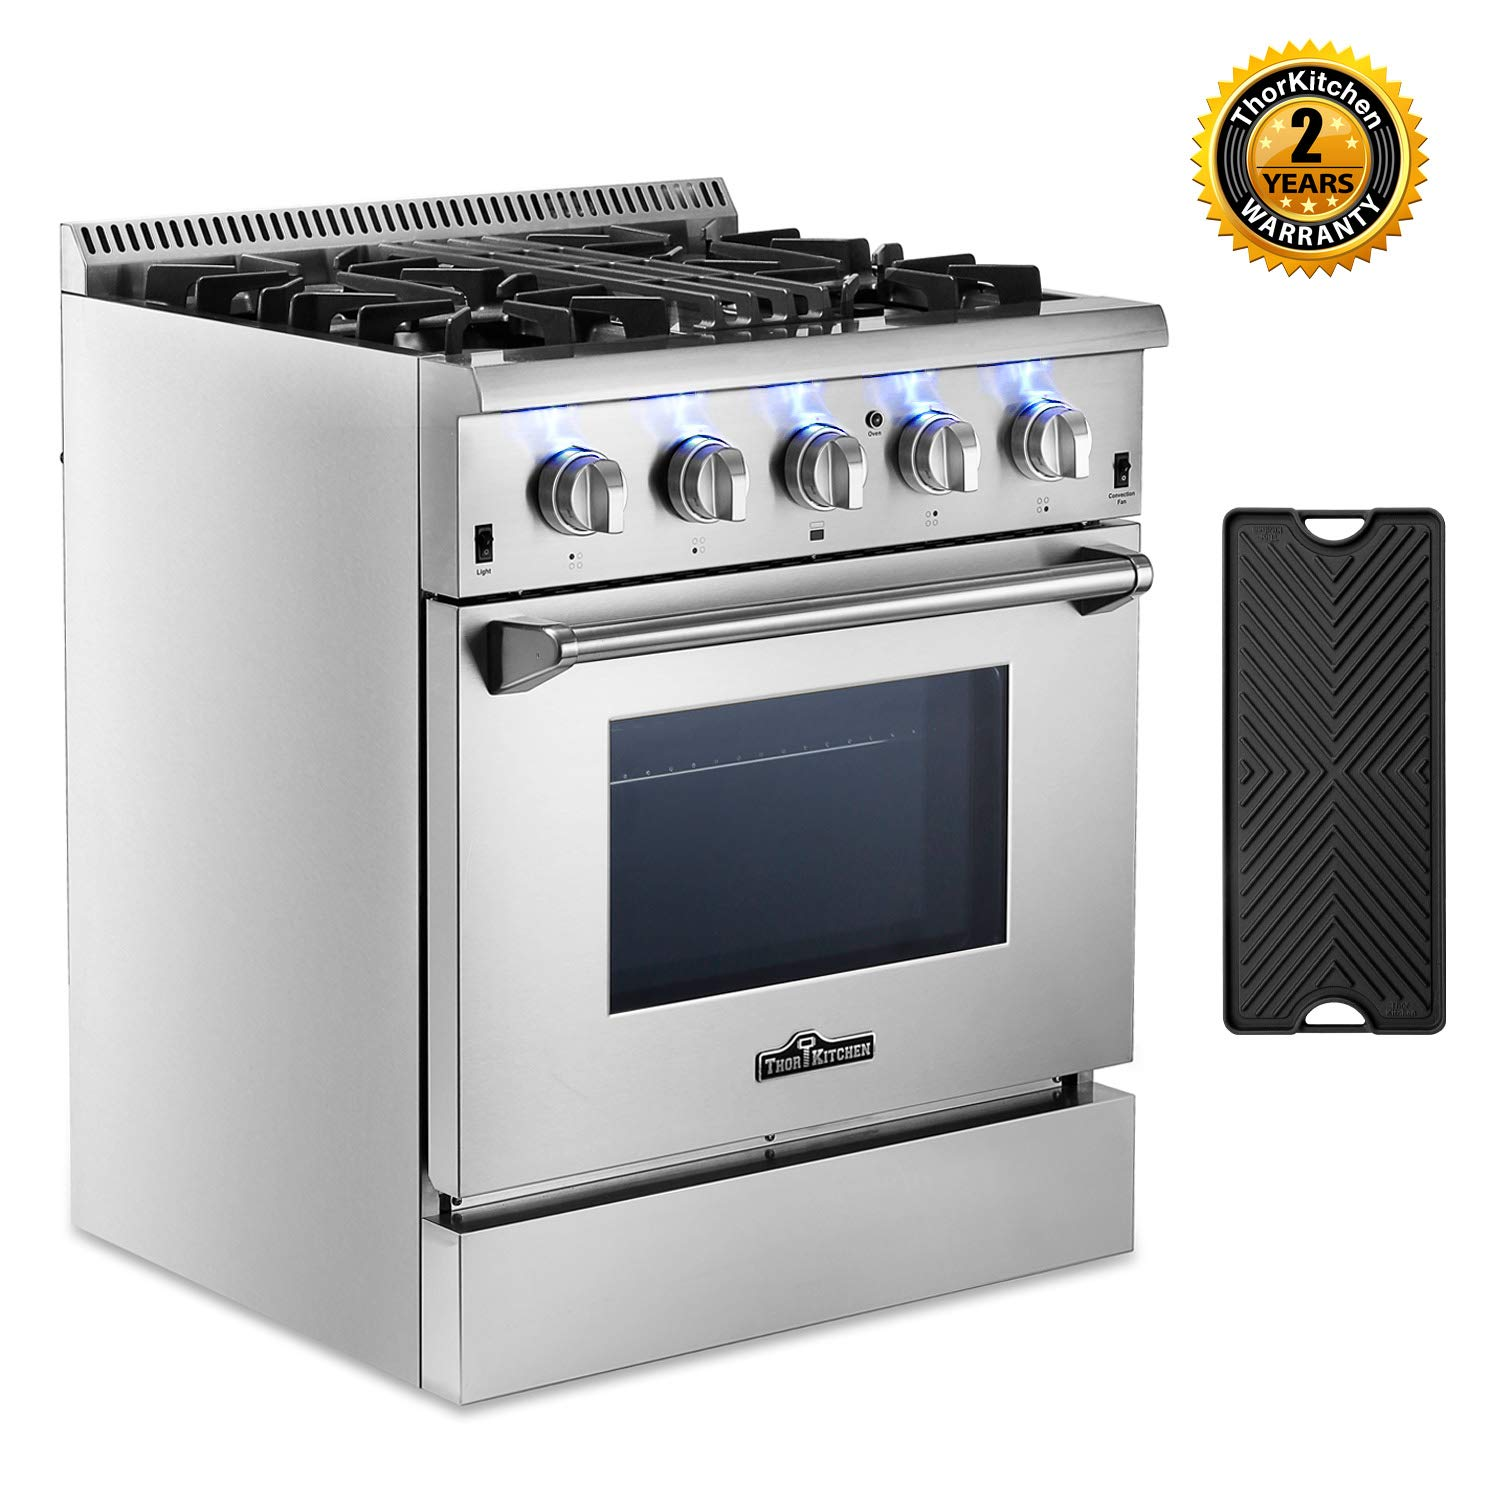 Thor Kitchen HRD3088U 30'' Dual Fuel Pro-Style Range Freestanding Professional Style with 4.2 cu.ft Convection Oven in Stainless Steel, 4 Burners, Cast-Iron Reversible Griddle